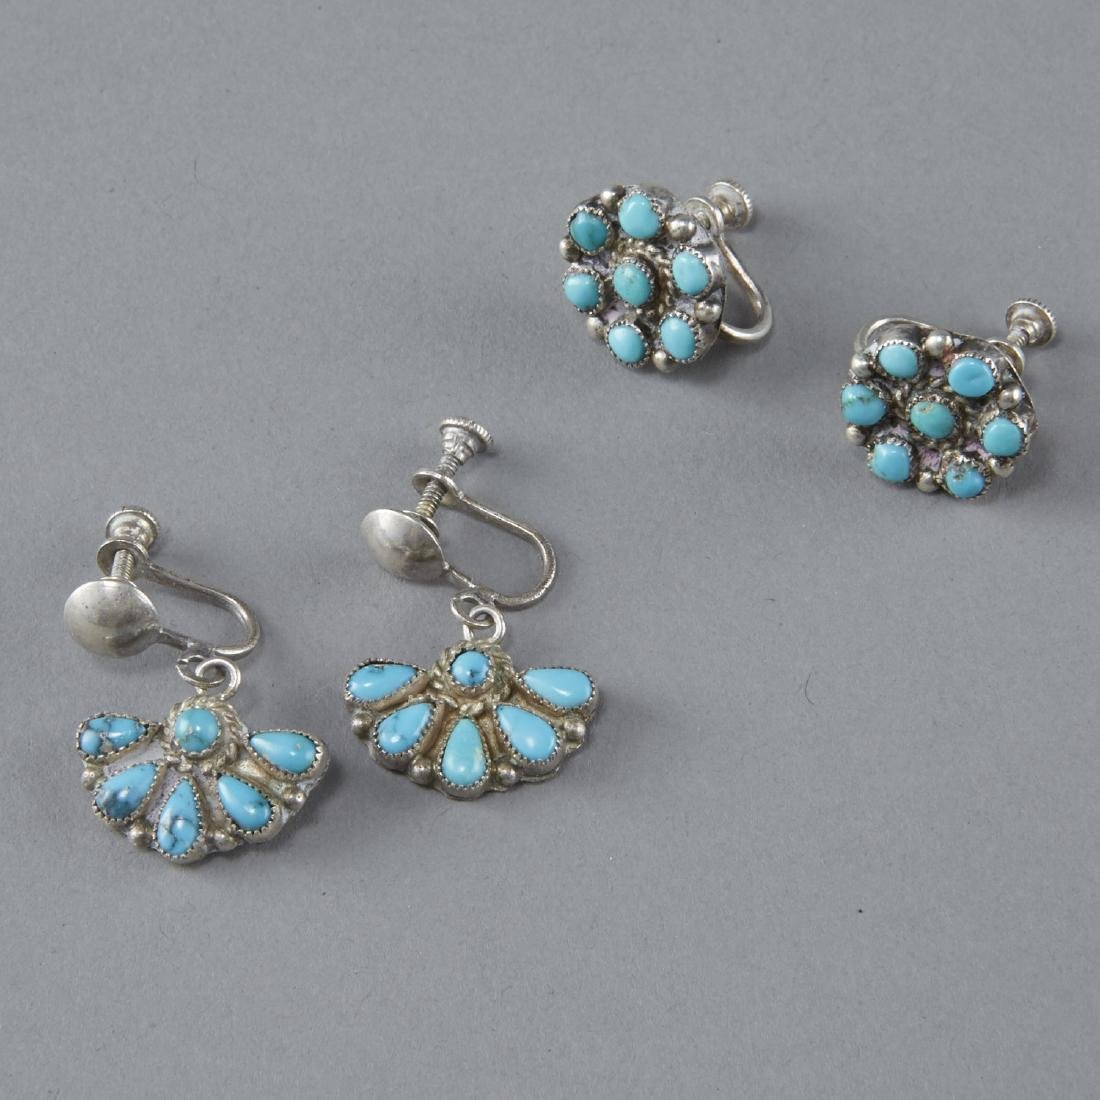 Southwestern Jewelry Silver, Turquoise, etc. - 7